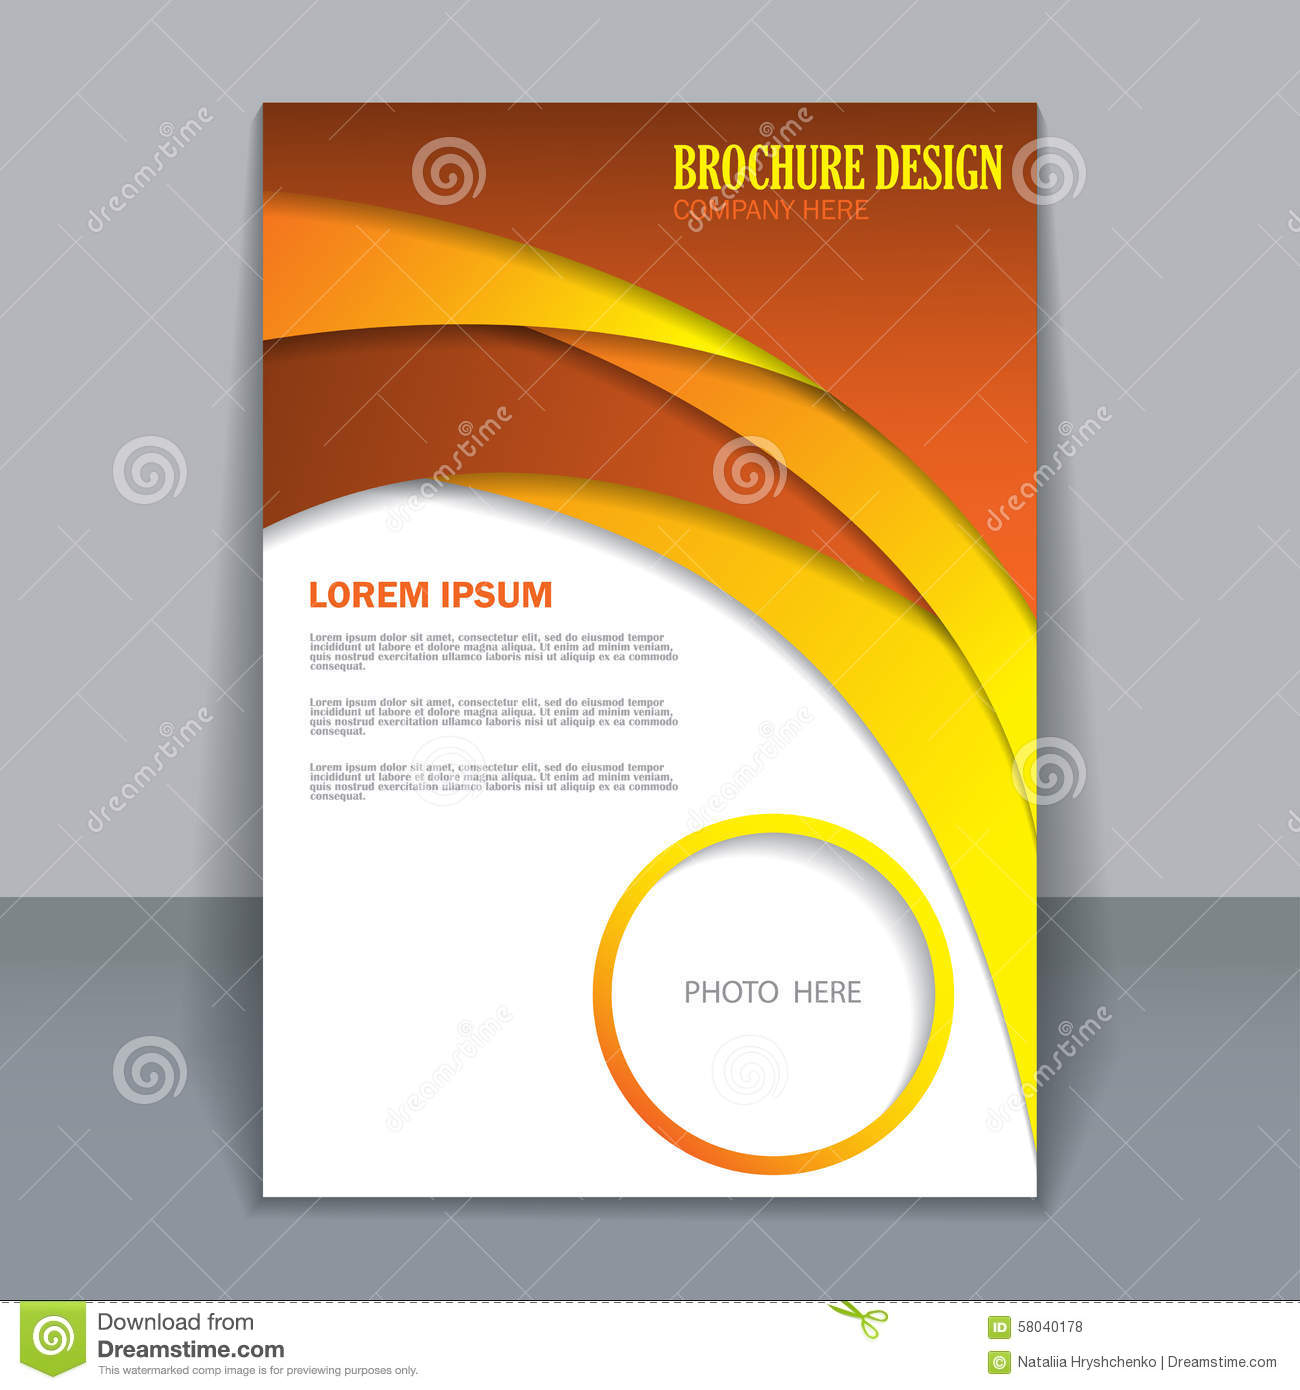 Vector Flyer Template For Design Stock Vector - Image: 58040178